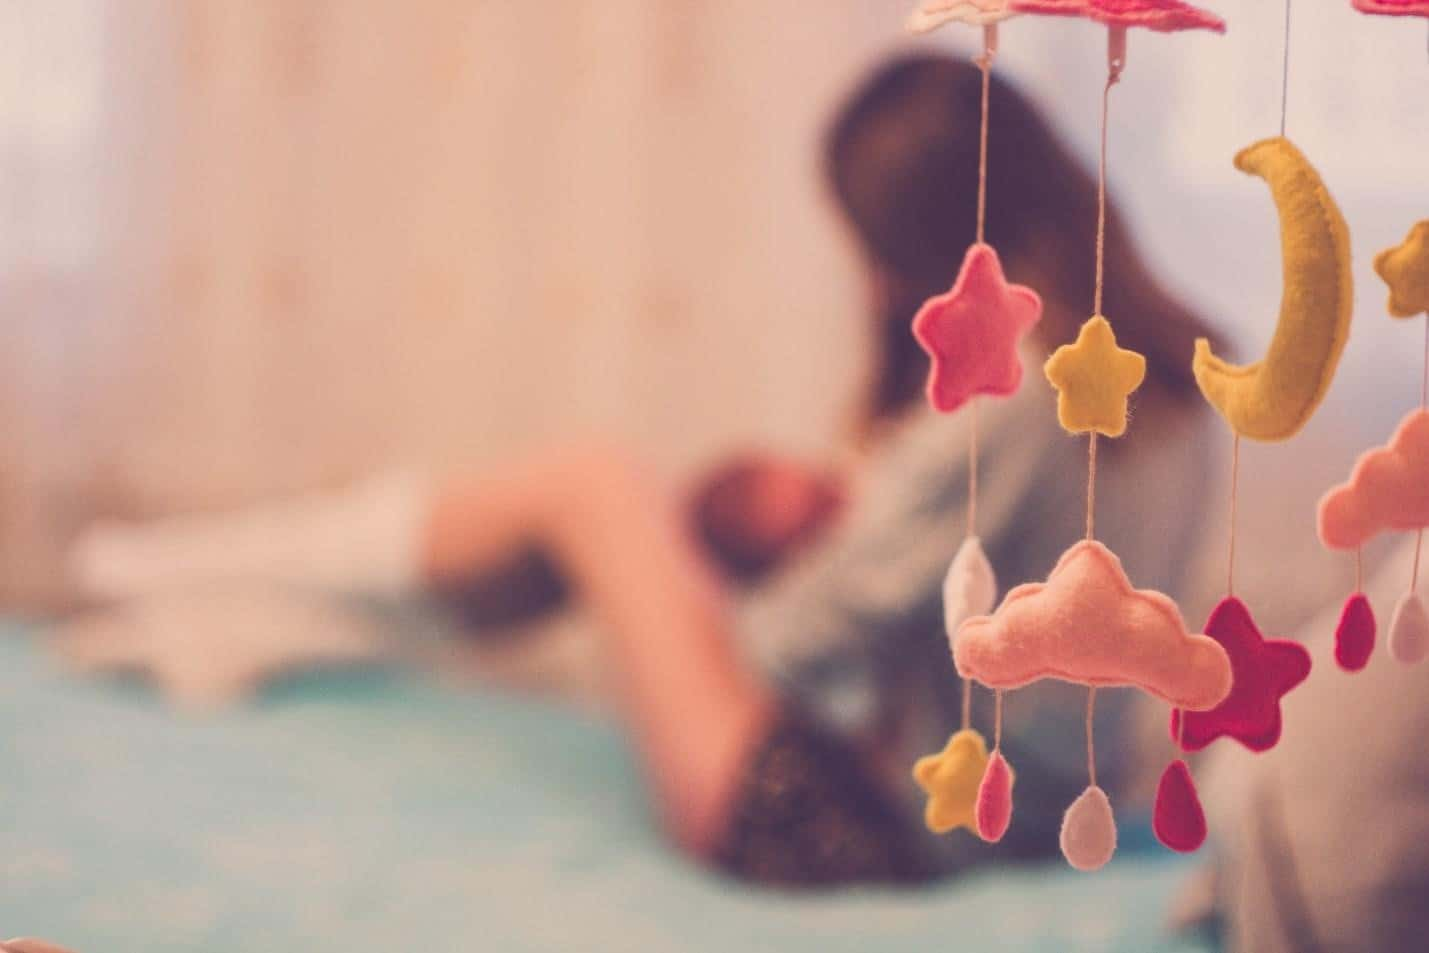 hanging colorful baby toys with the mother and baby at the background